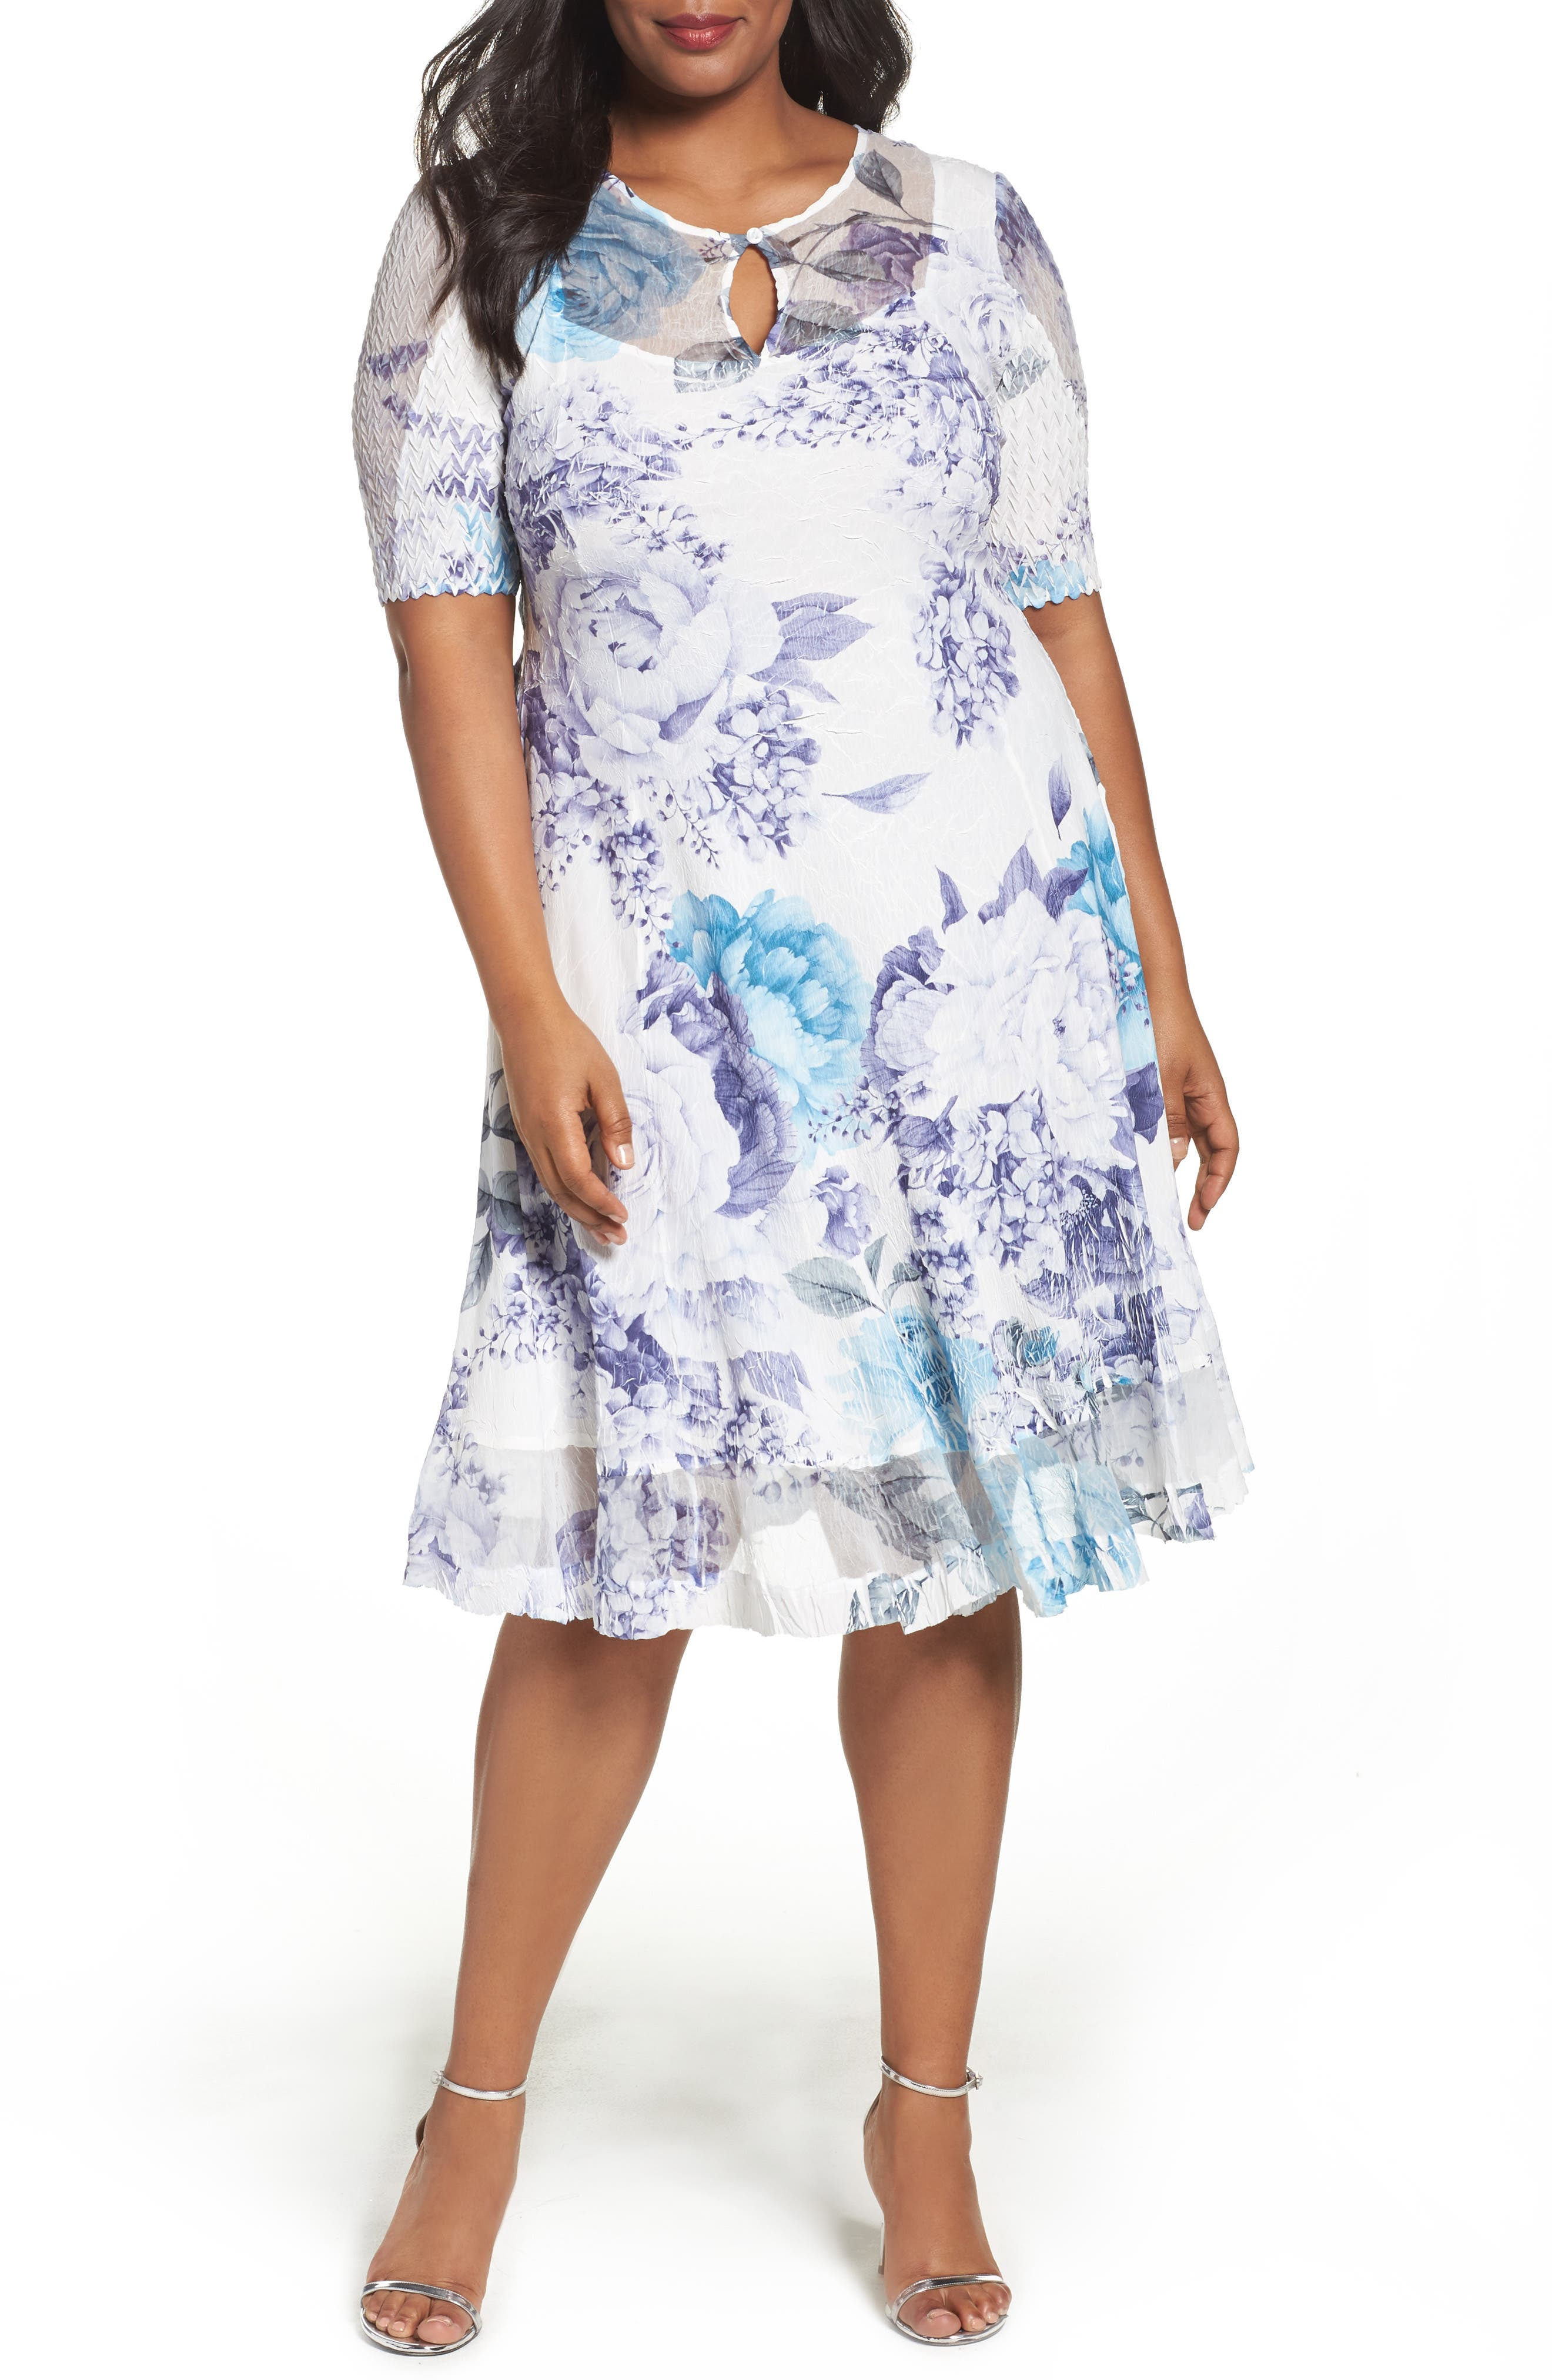 Alternate Image 1 Selected - Komarov Print Keyhole Chiffon A-Line Dress (Plus Size)